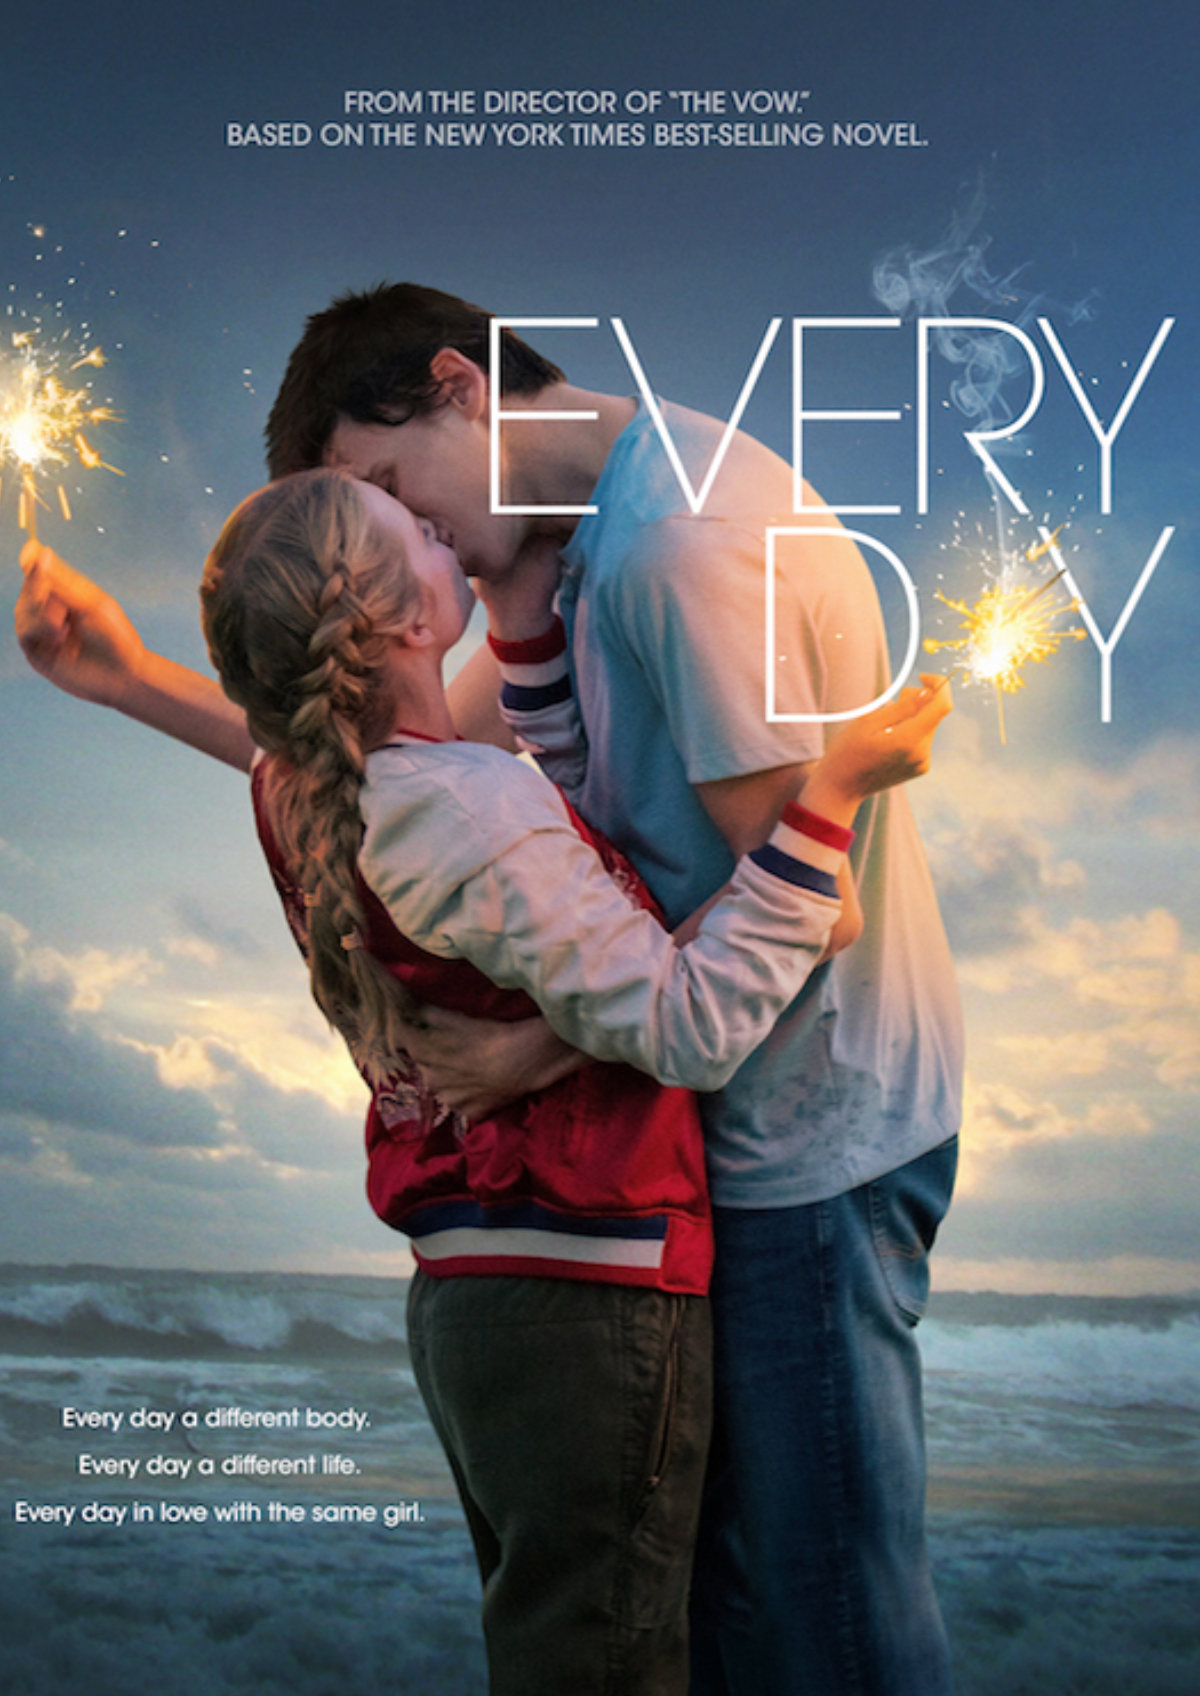 'Every Day' movie poster